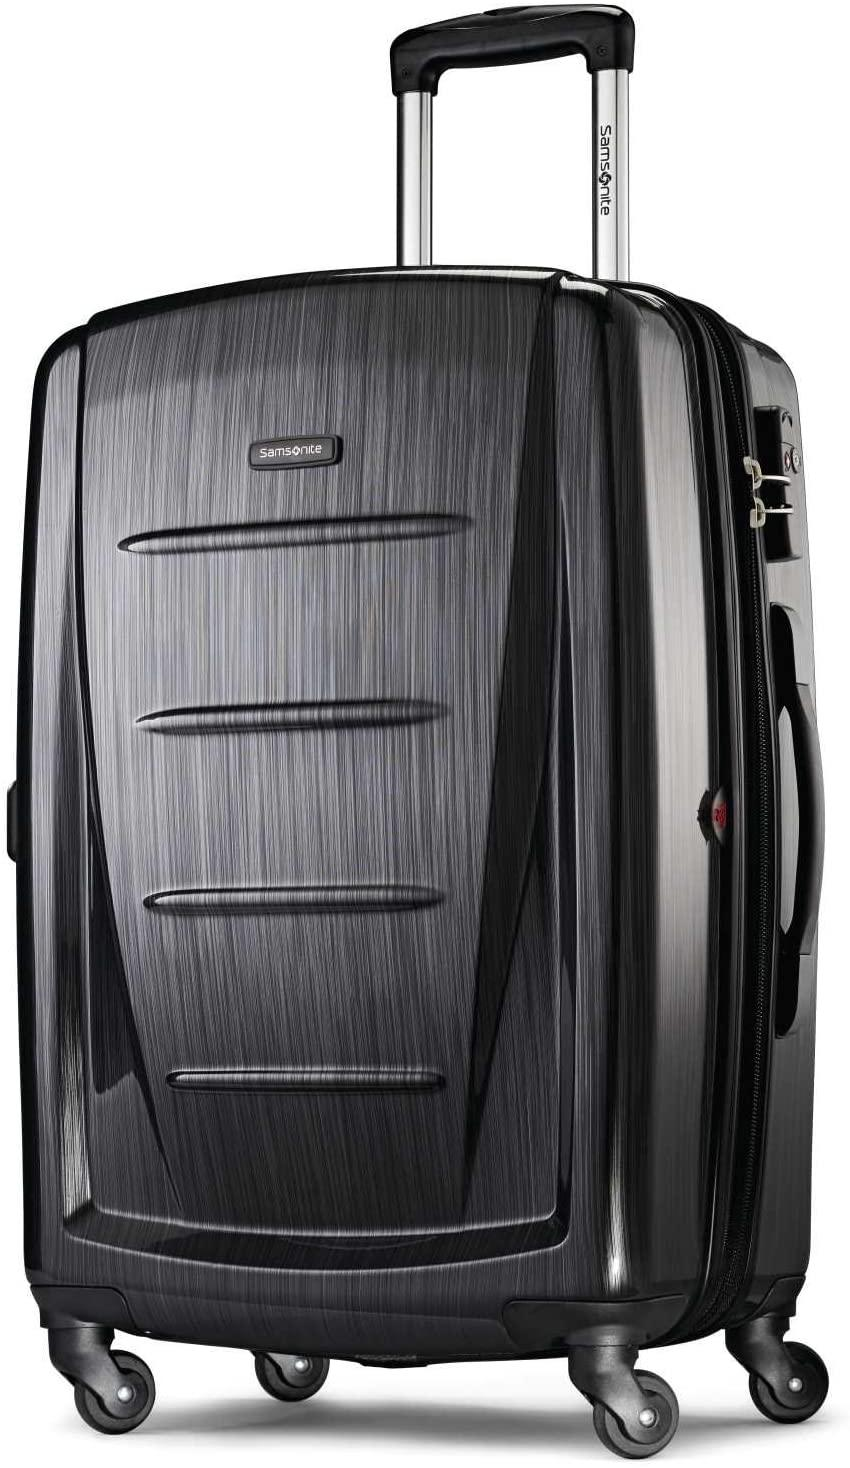 """<br><br><strong>Samsonite</strong> Winfield Two Hardside Expandable Luggage, $, available at <a href=""""https://www.amazon.com/Samsonite-56846-2849-Checked-Large-Brushed-Anthracite/dp/B072Q31PBF/ref=sr_1_21"""" rel=""""nofollow noopener"""" target=""""_blank"""" data-ylk=""""slk:Amazon"""" class=""""link rapid-noclick-resp"""">Amazon</a>"""